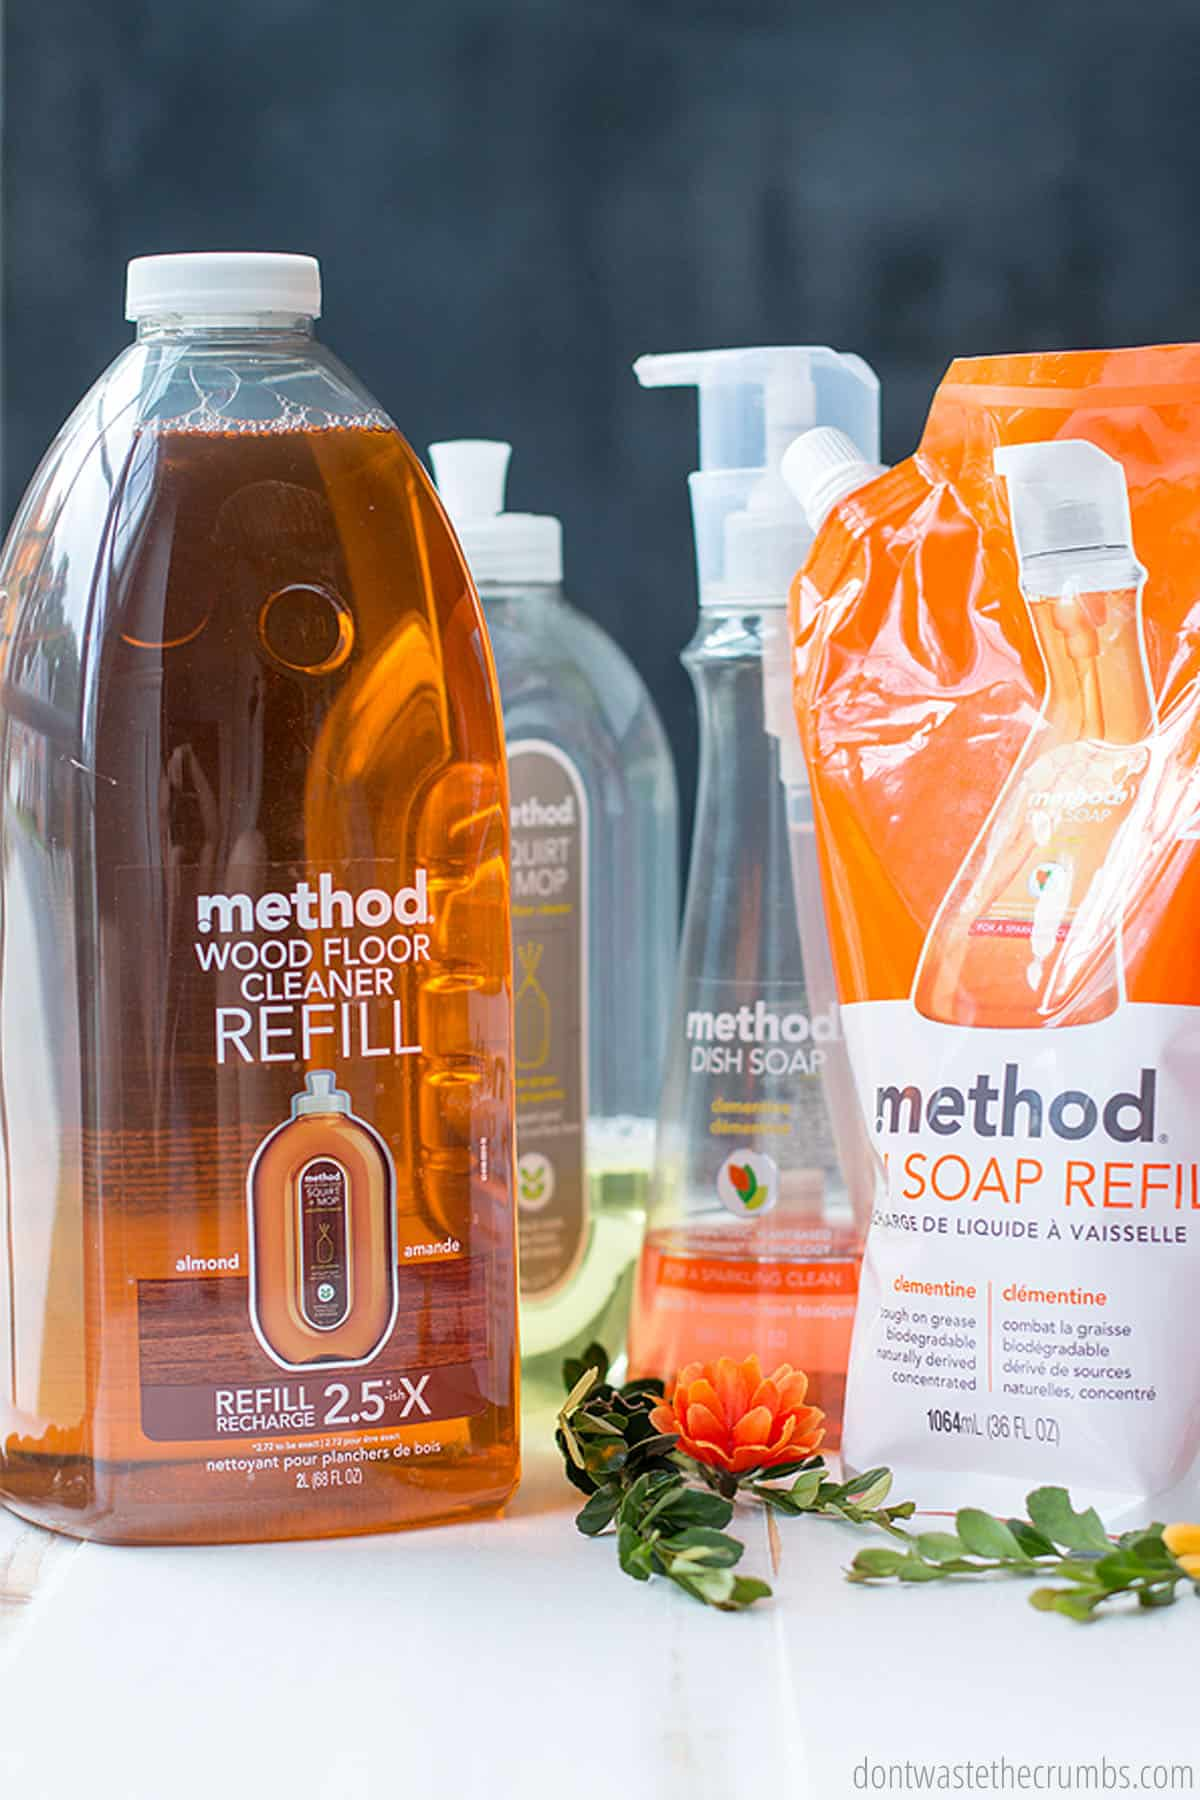 Method refill products are a great option at Grove Co. Pictured are a wood floor cleaner refill and a dish soap refill on a table beside some green leaves and stems.